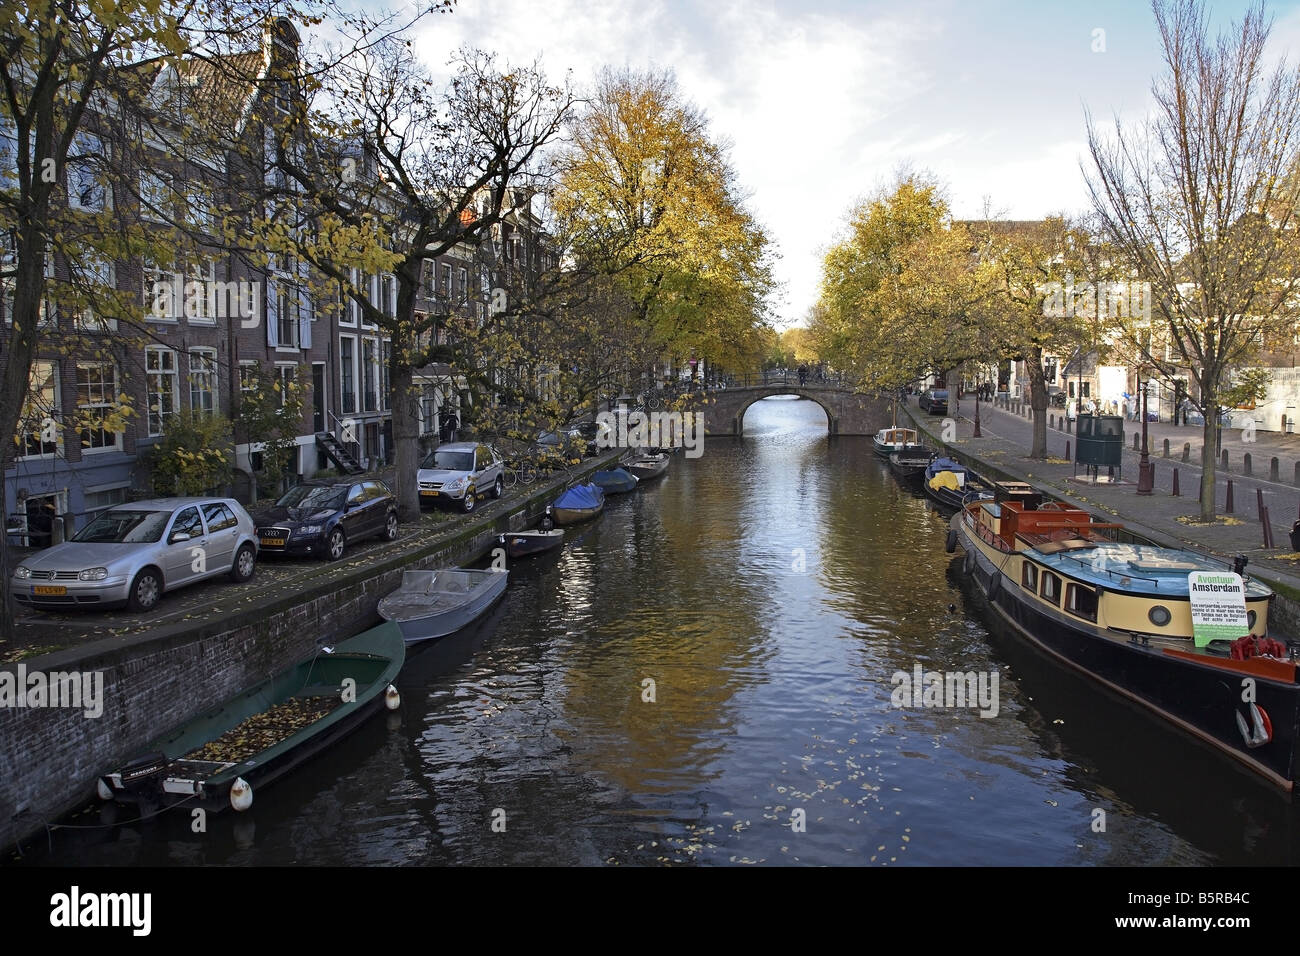 A view of the canal from the bridge at the Prinsengracht in Amsterdam - Stock Image